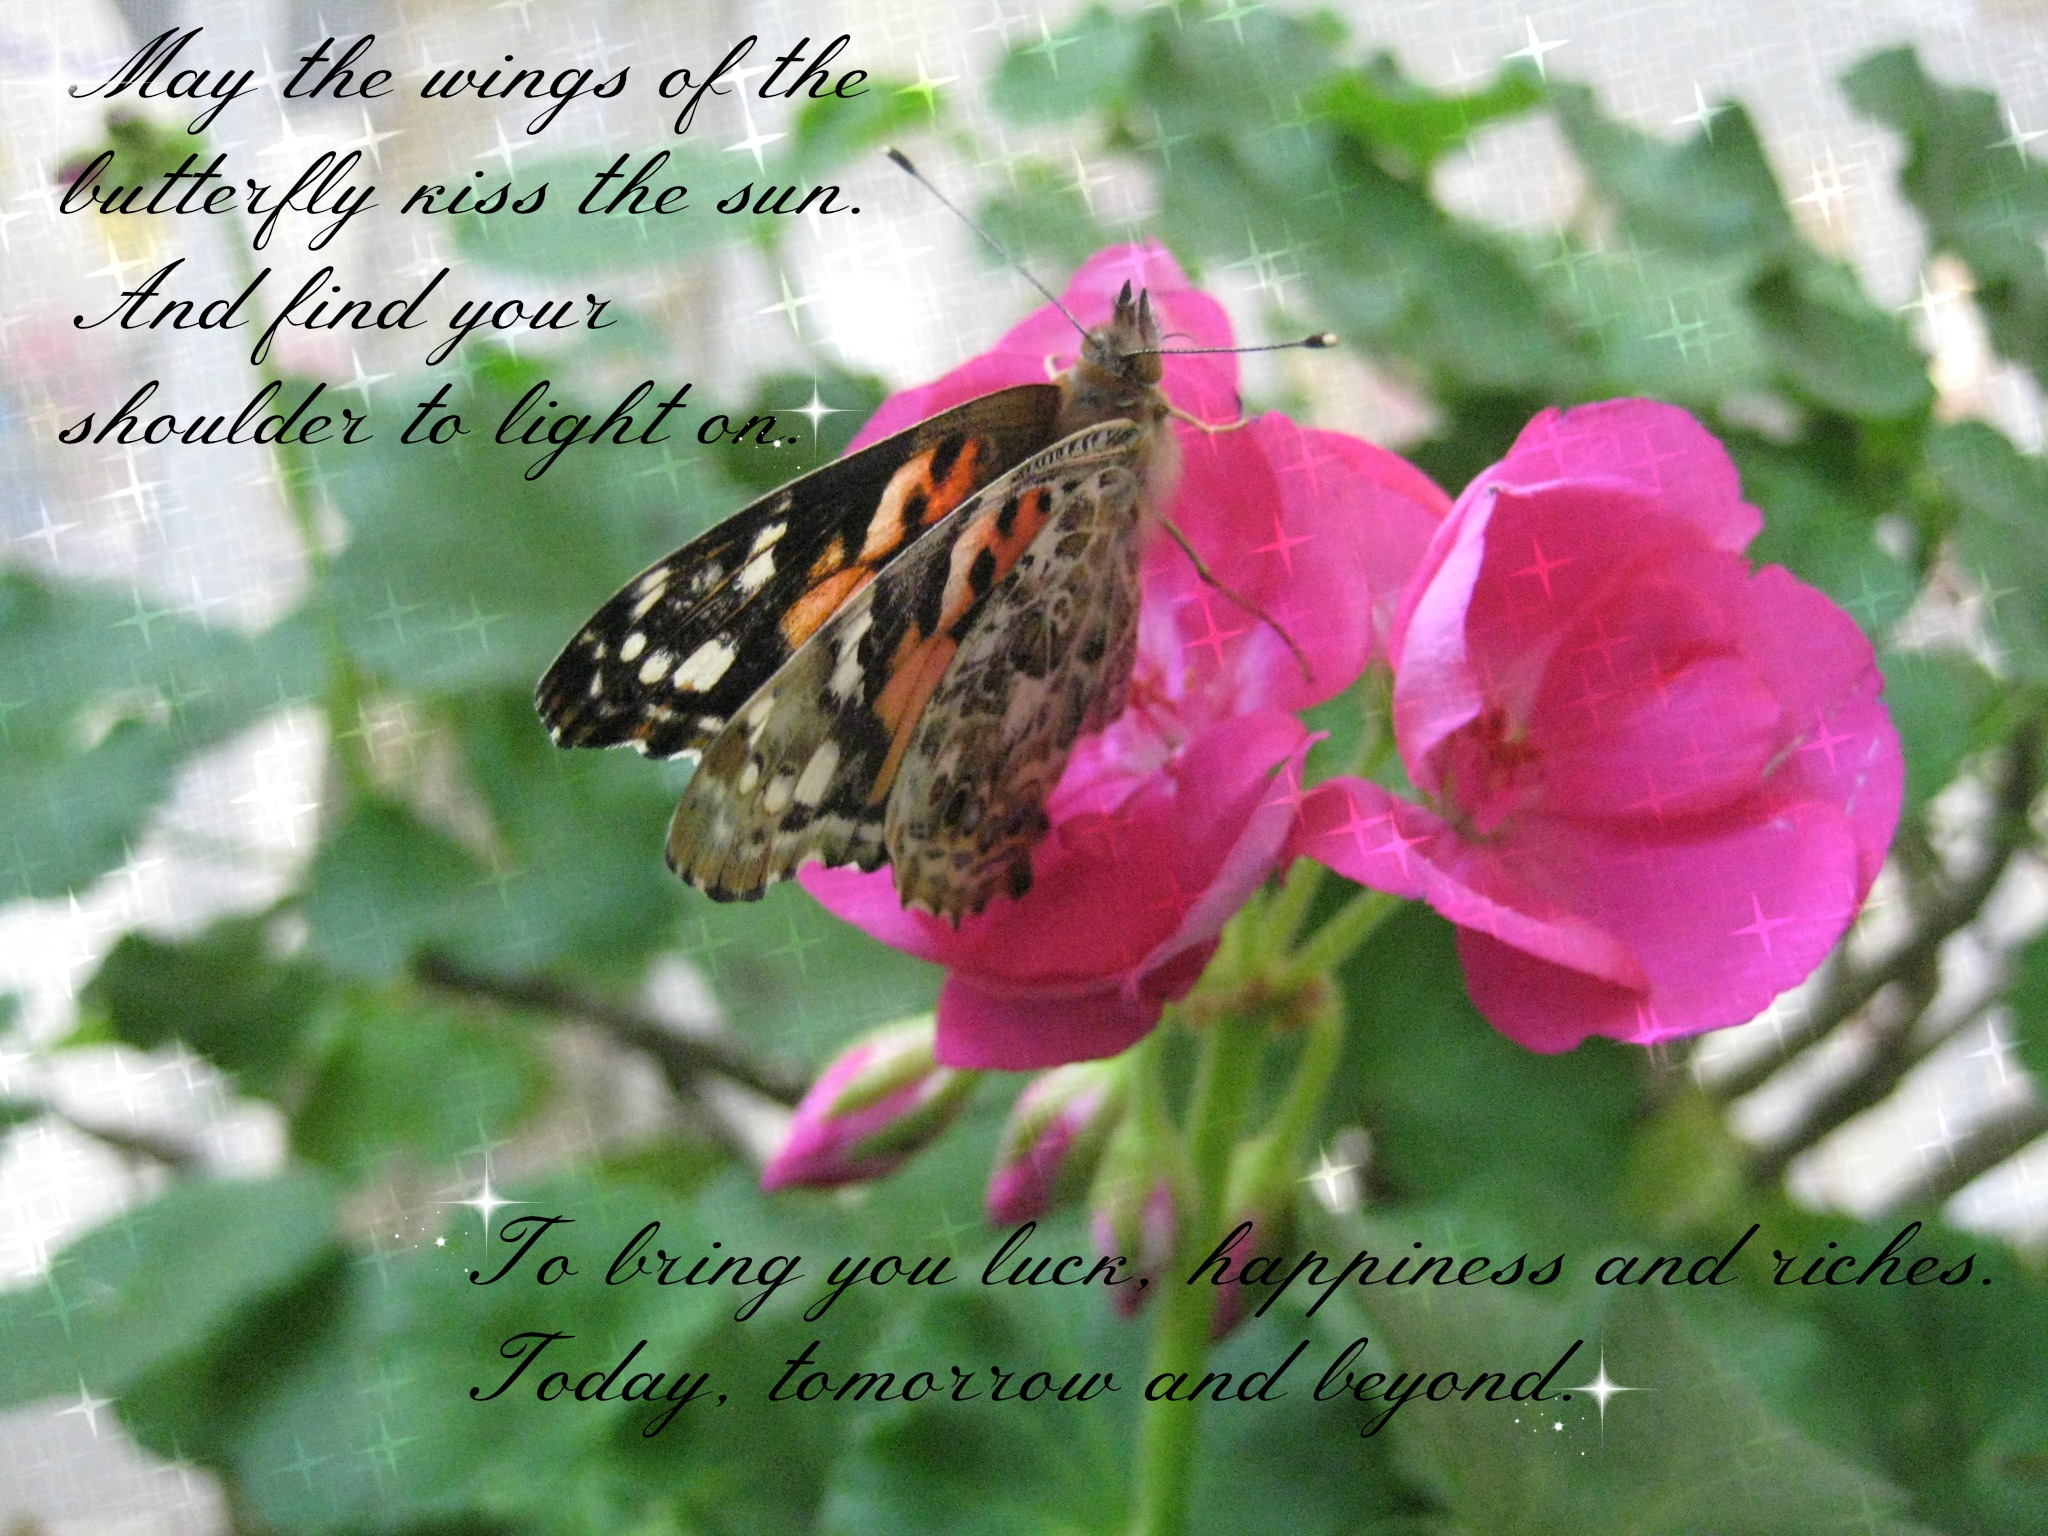 Butterfly poems and sayings wish upon a butterfly may the wings of the butterfly kiss the sun and find your shoulder to light dhlflorist Gallery